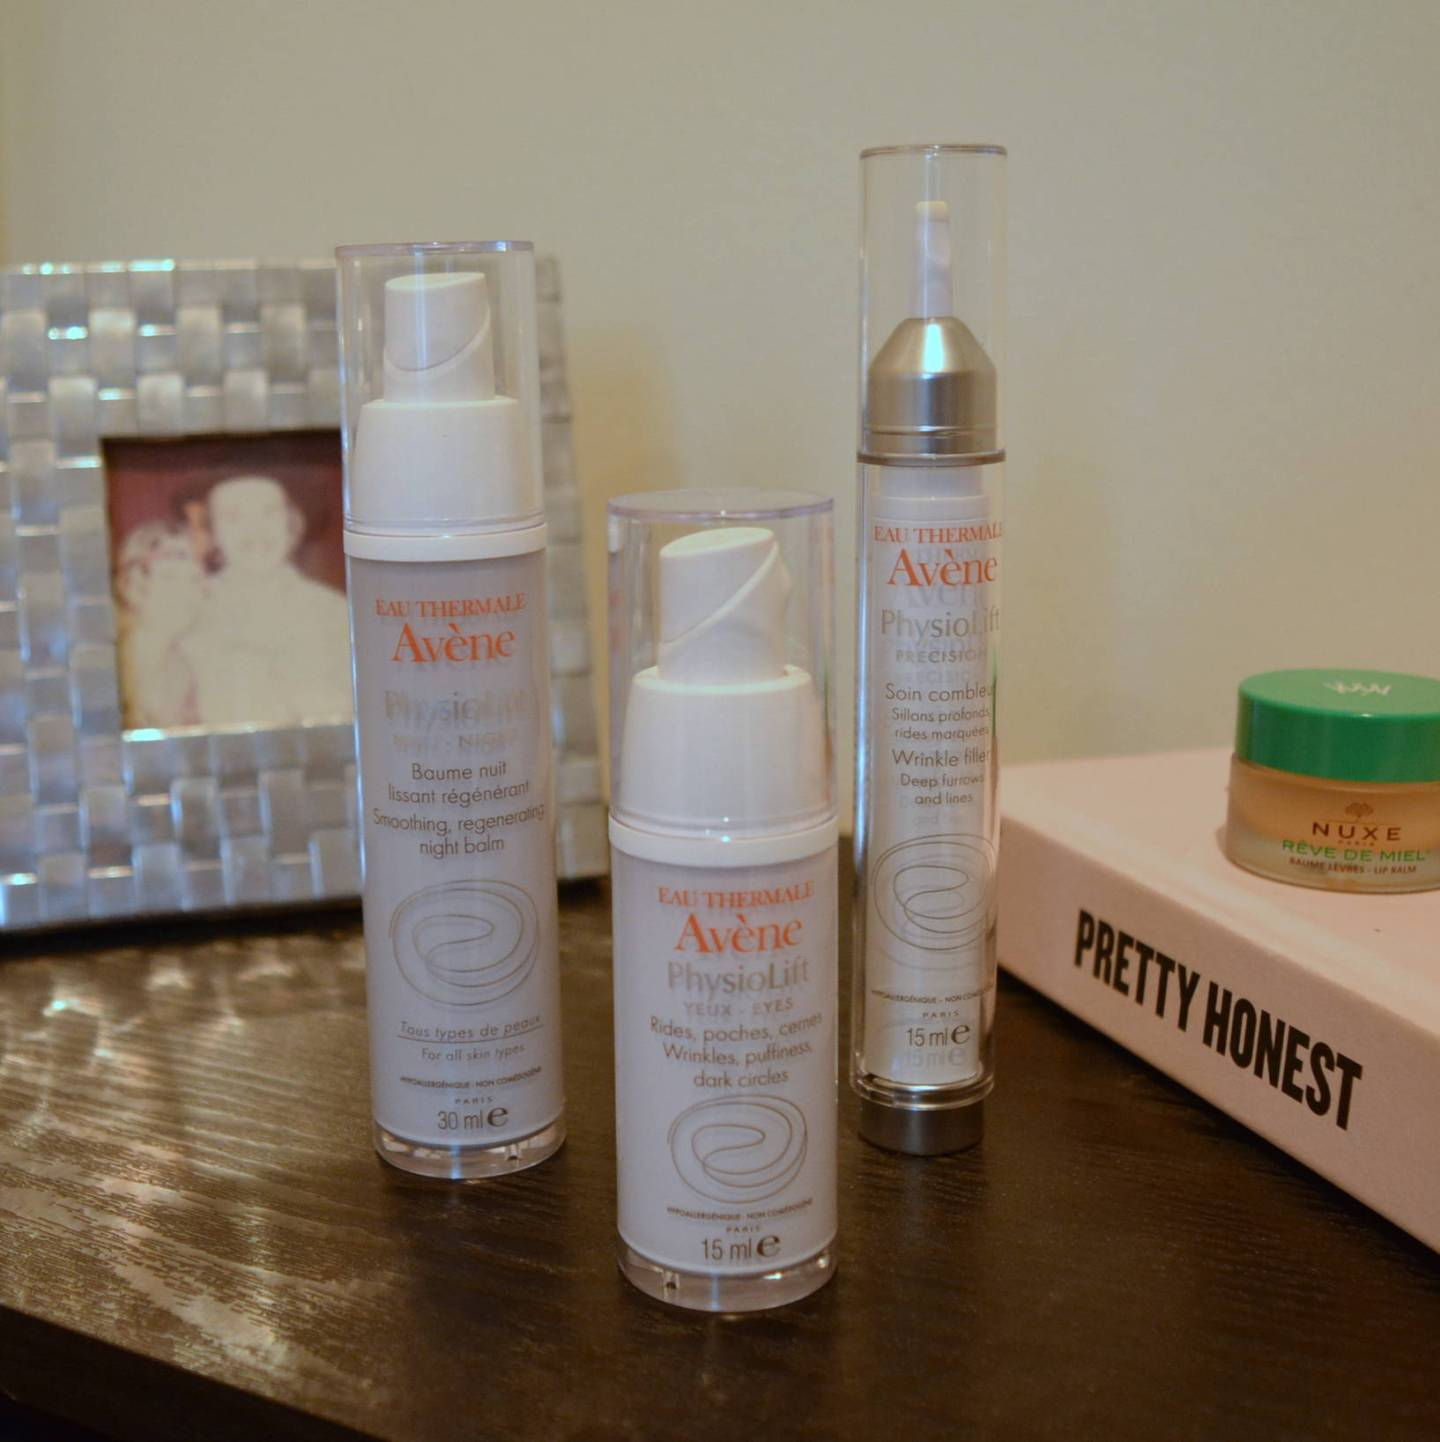 Avene PhysioLift Anti Ageing skincare for sensitive skin